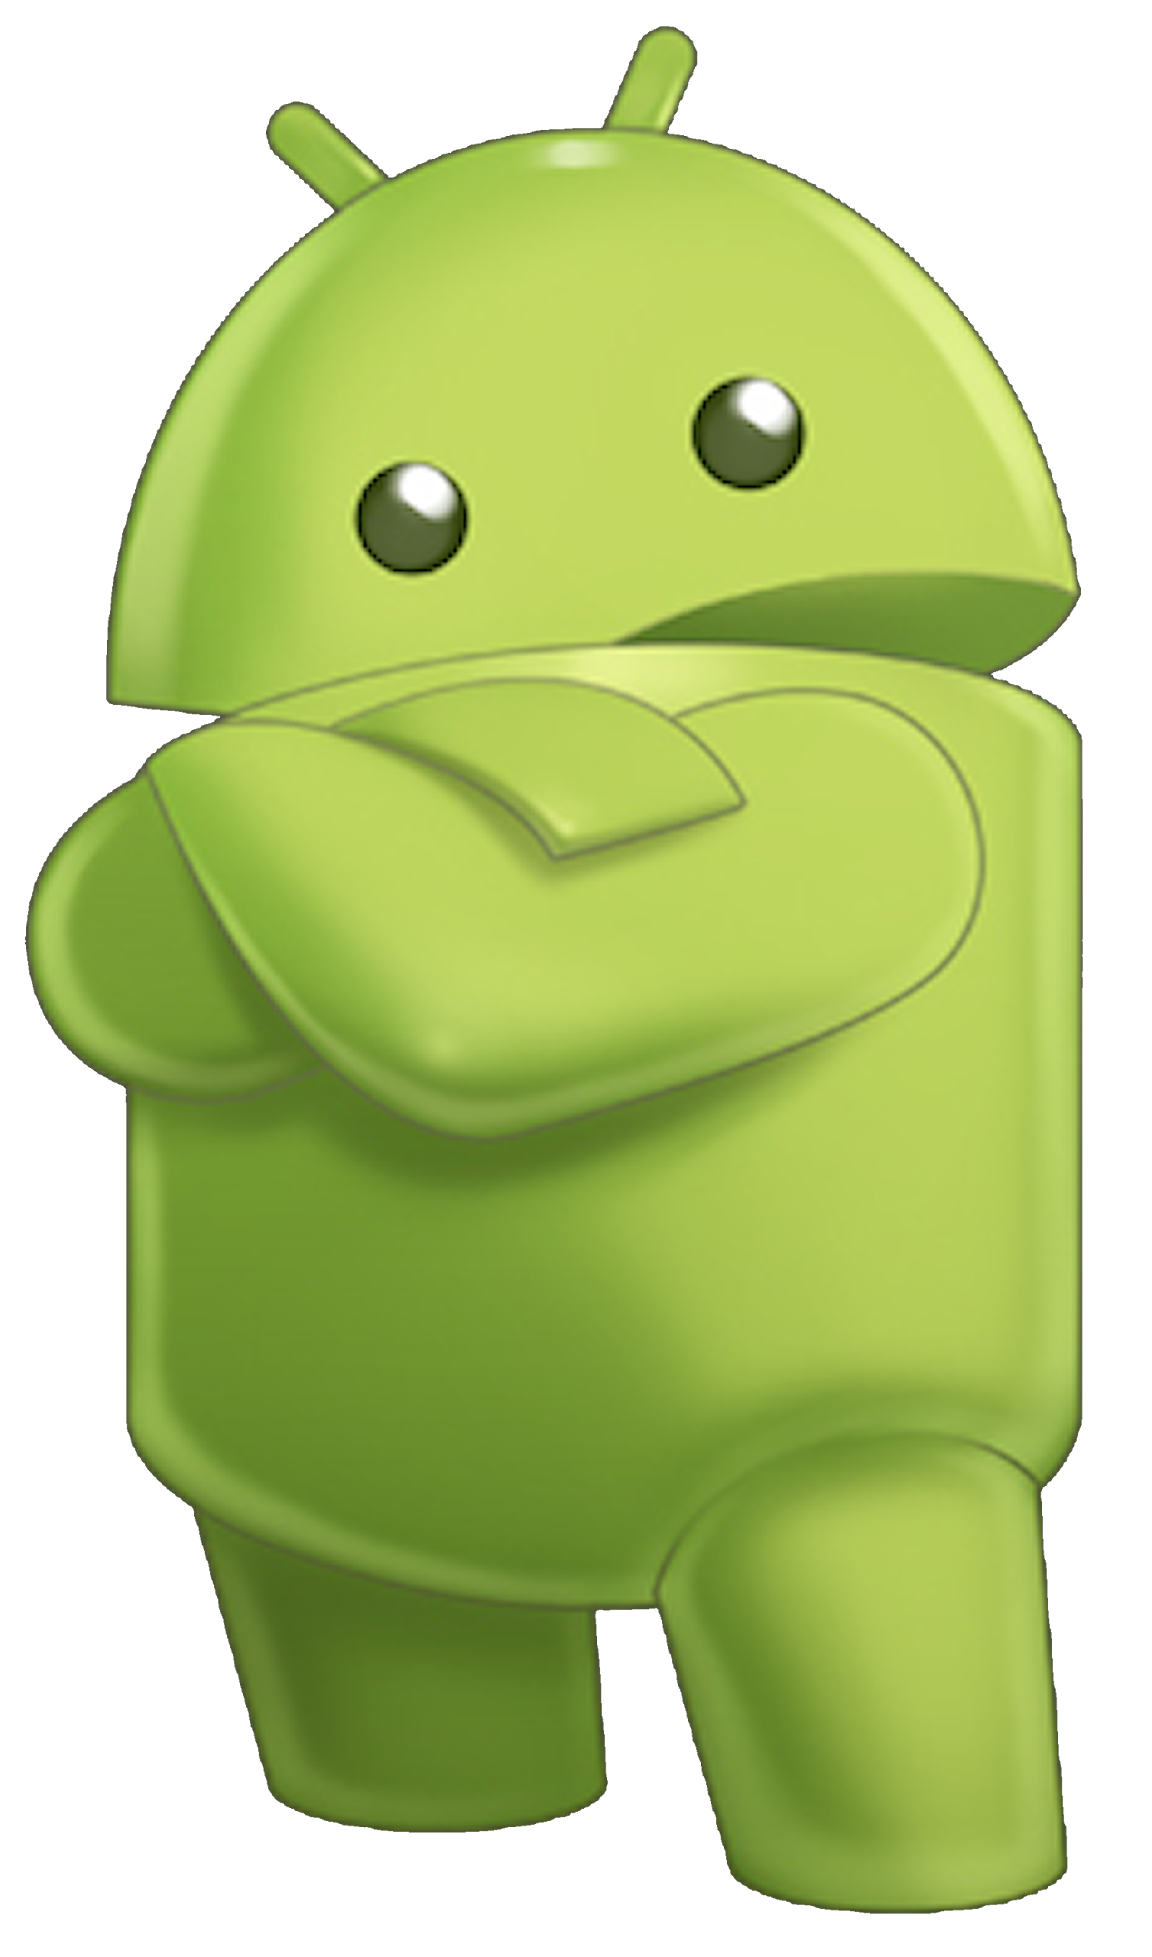 Download Android Free Download HQ PNG Image | FreePNGImg